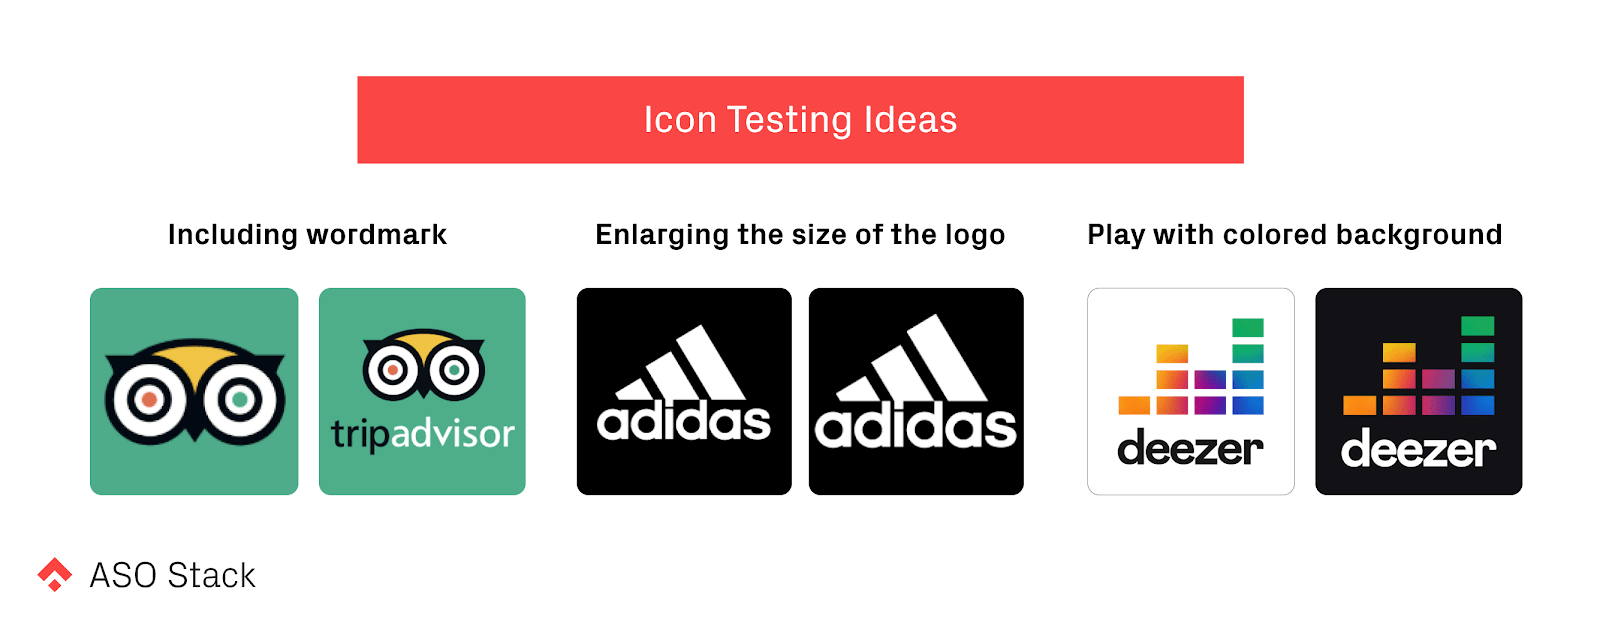 icon testing ideas